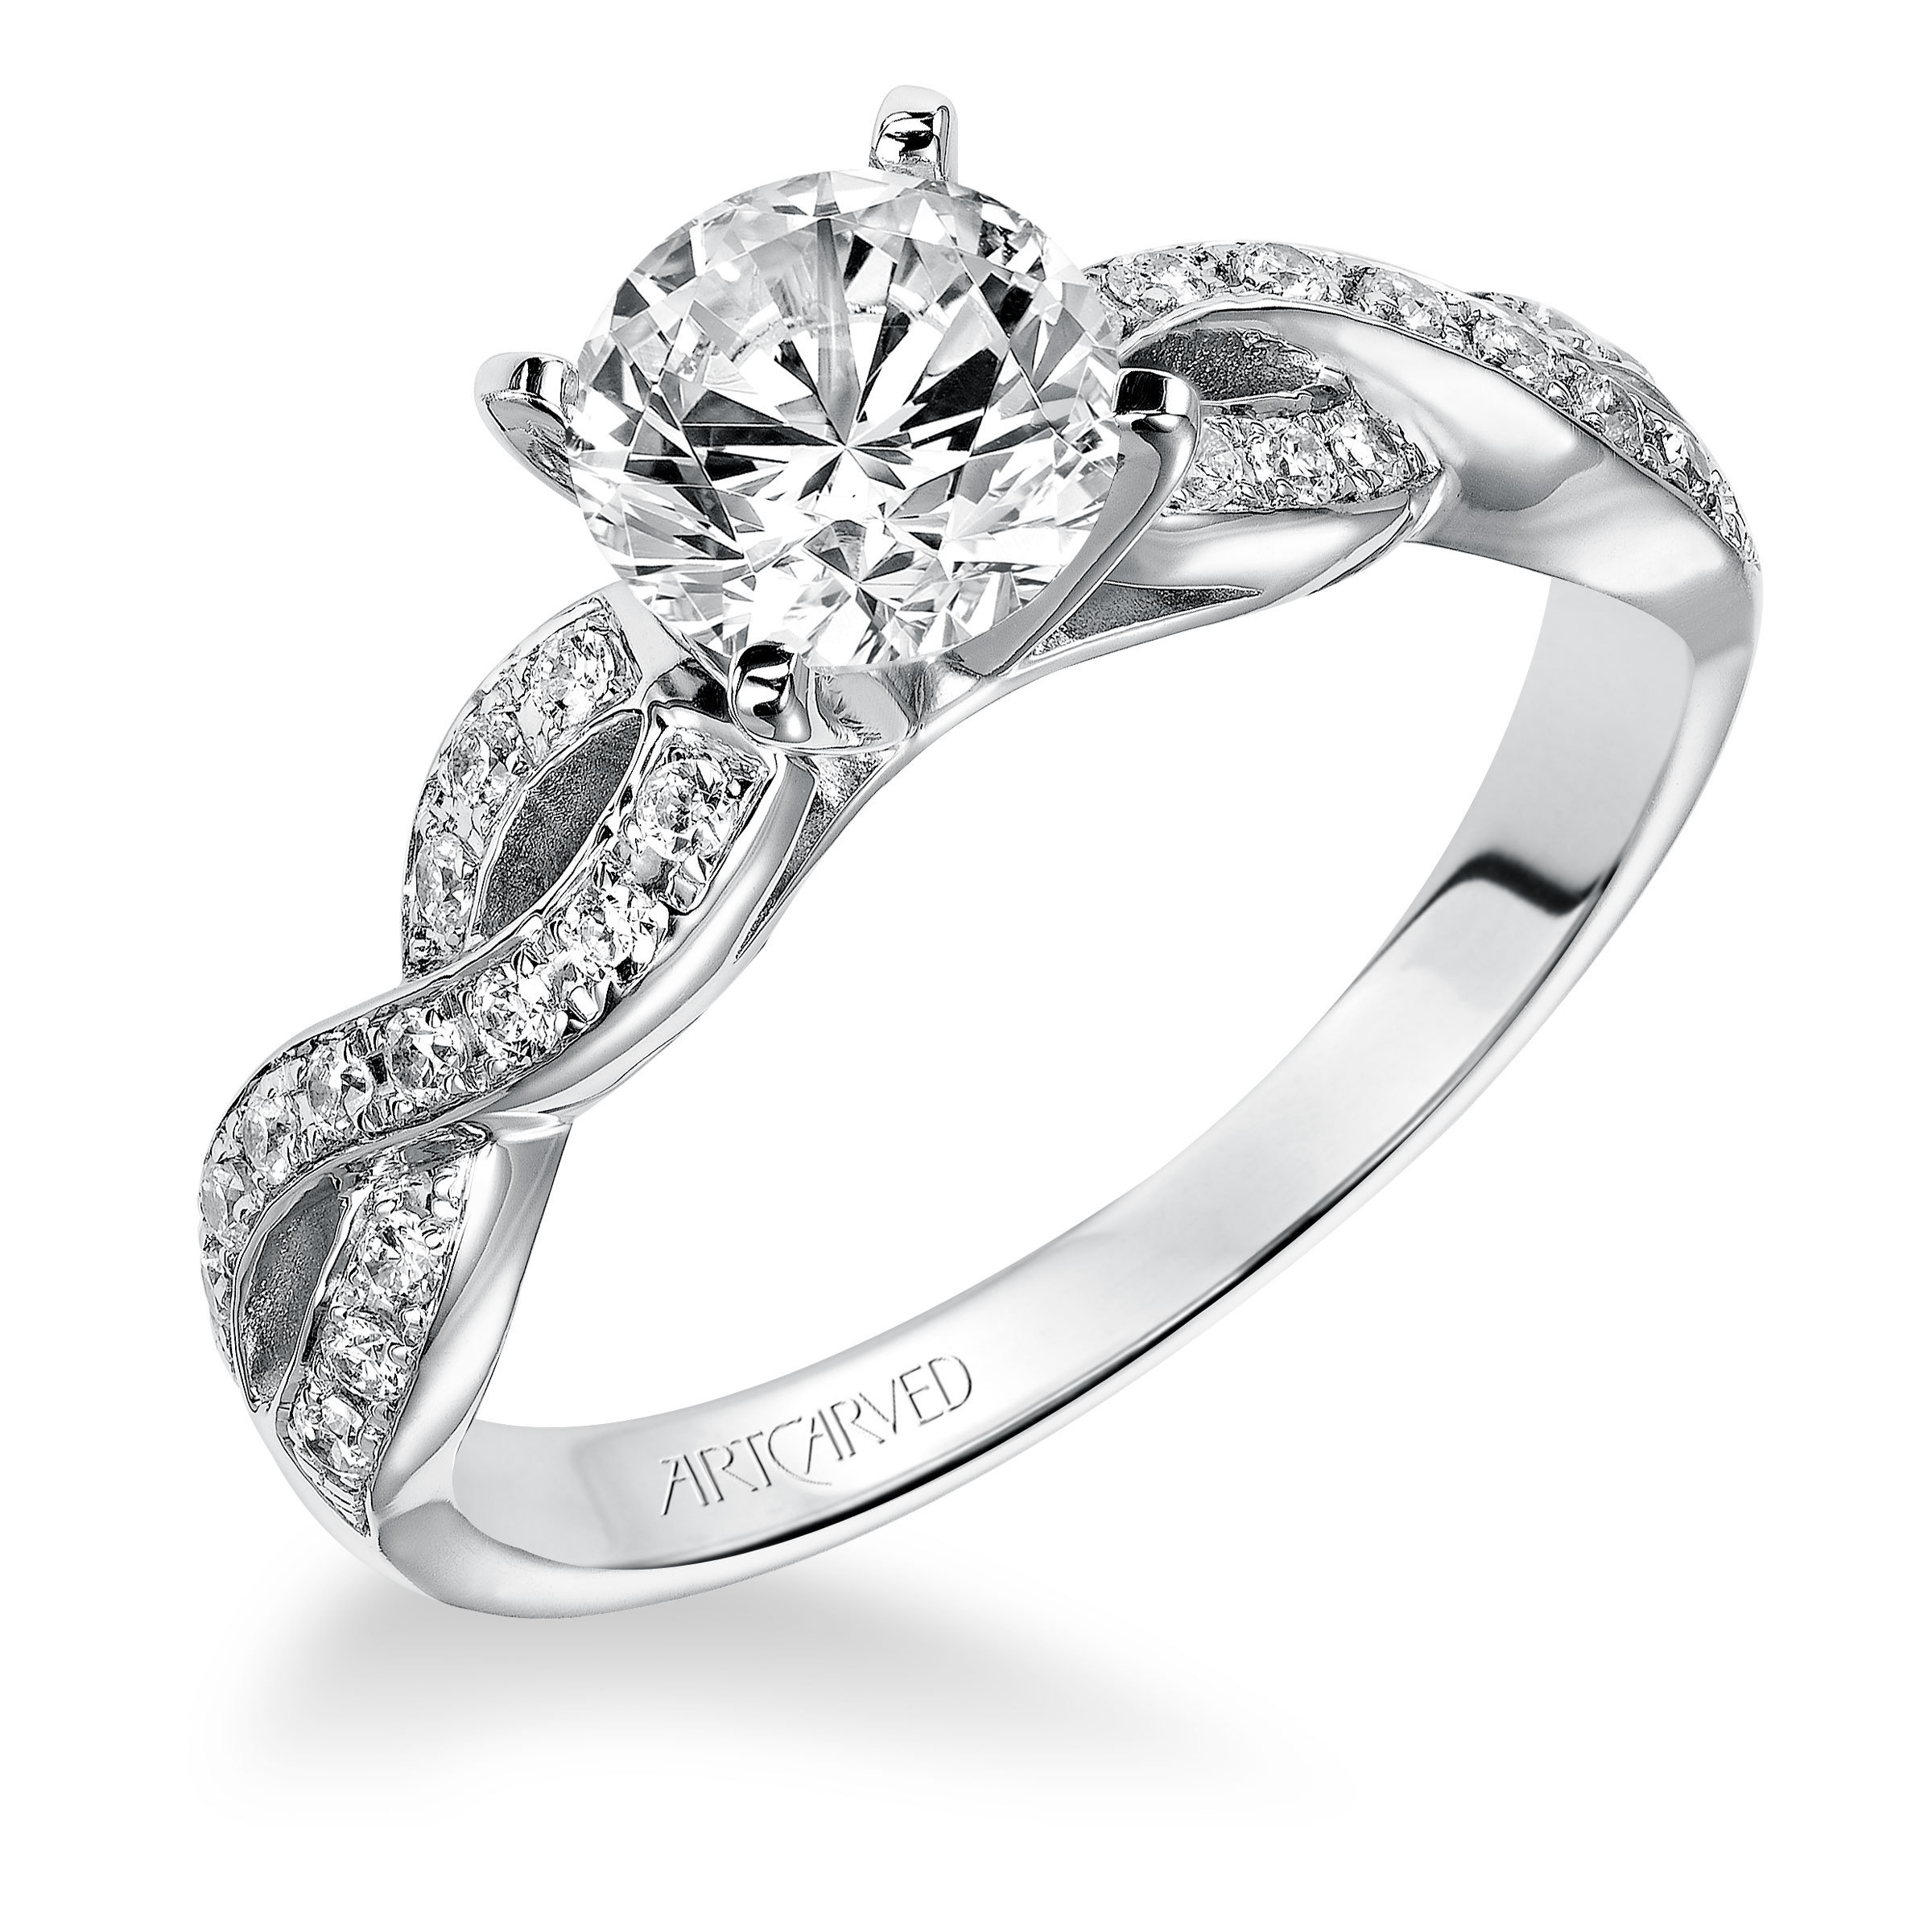 own pin design engagement jewelry ring your wedding jewellery with joseph